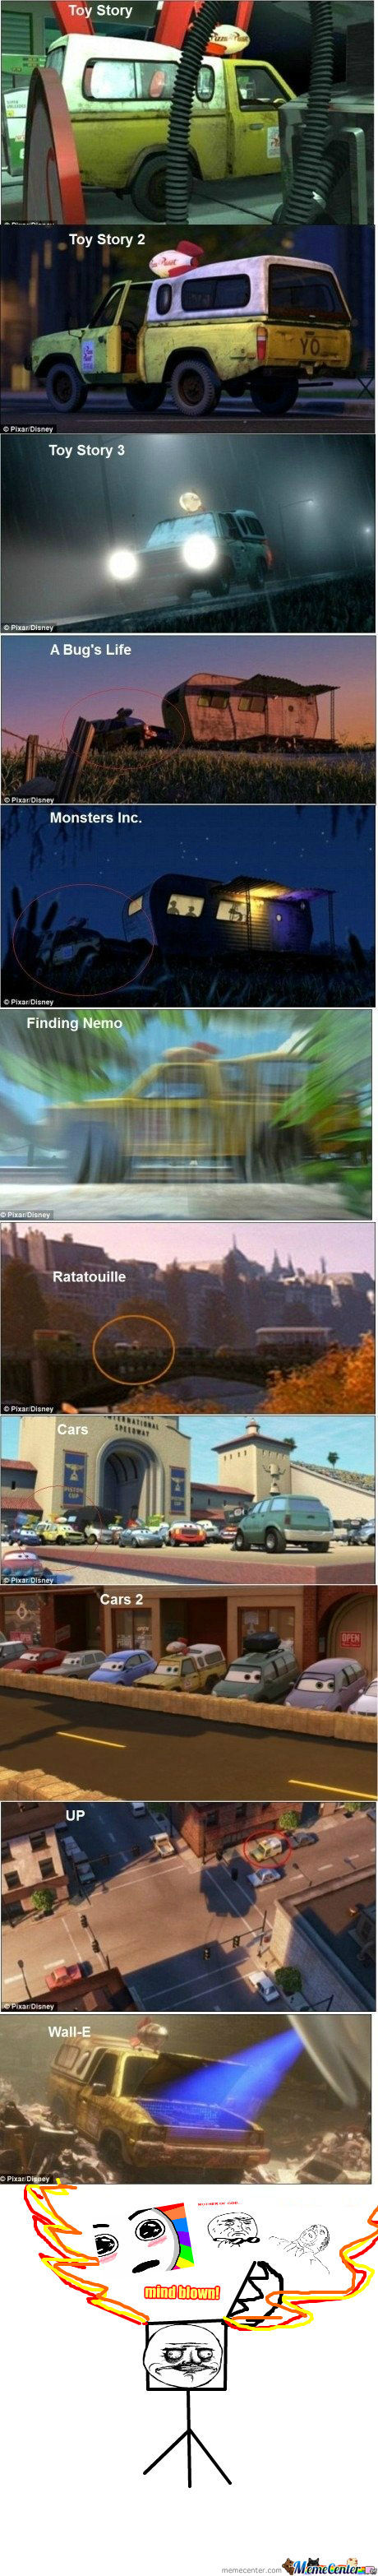 [RMX] I Bet You Never Noticed This